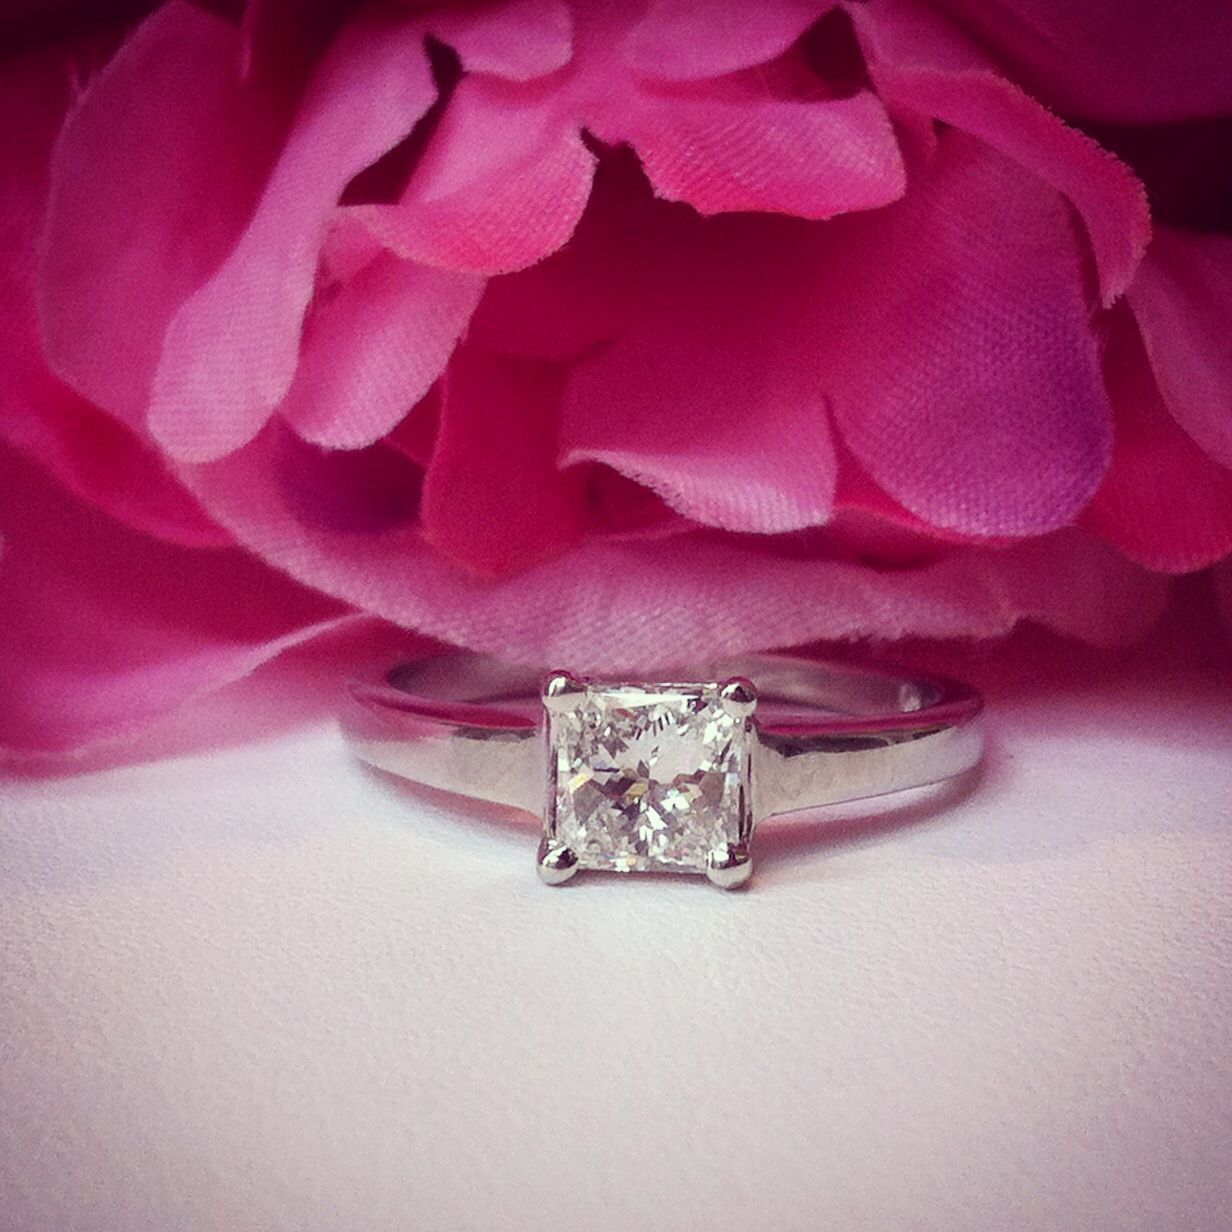 We want to hear your fairytale story! Post your engagement story ...